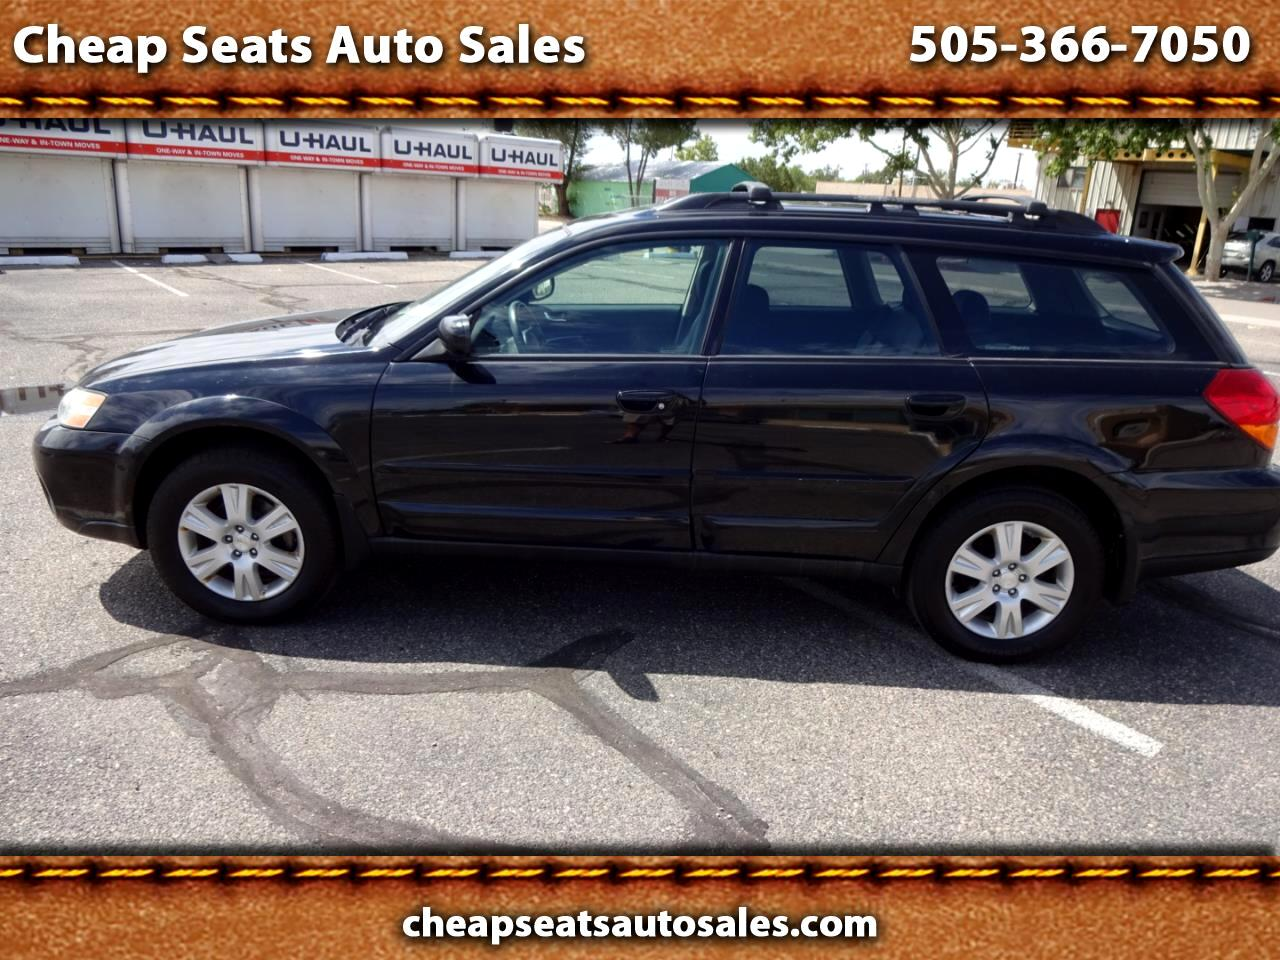 Subaru Outback 2.5i Limited Wagon 2005